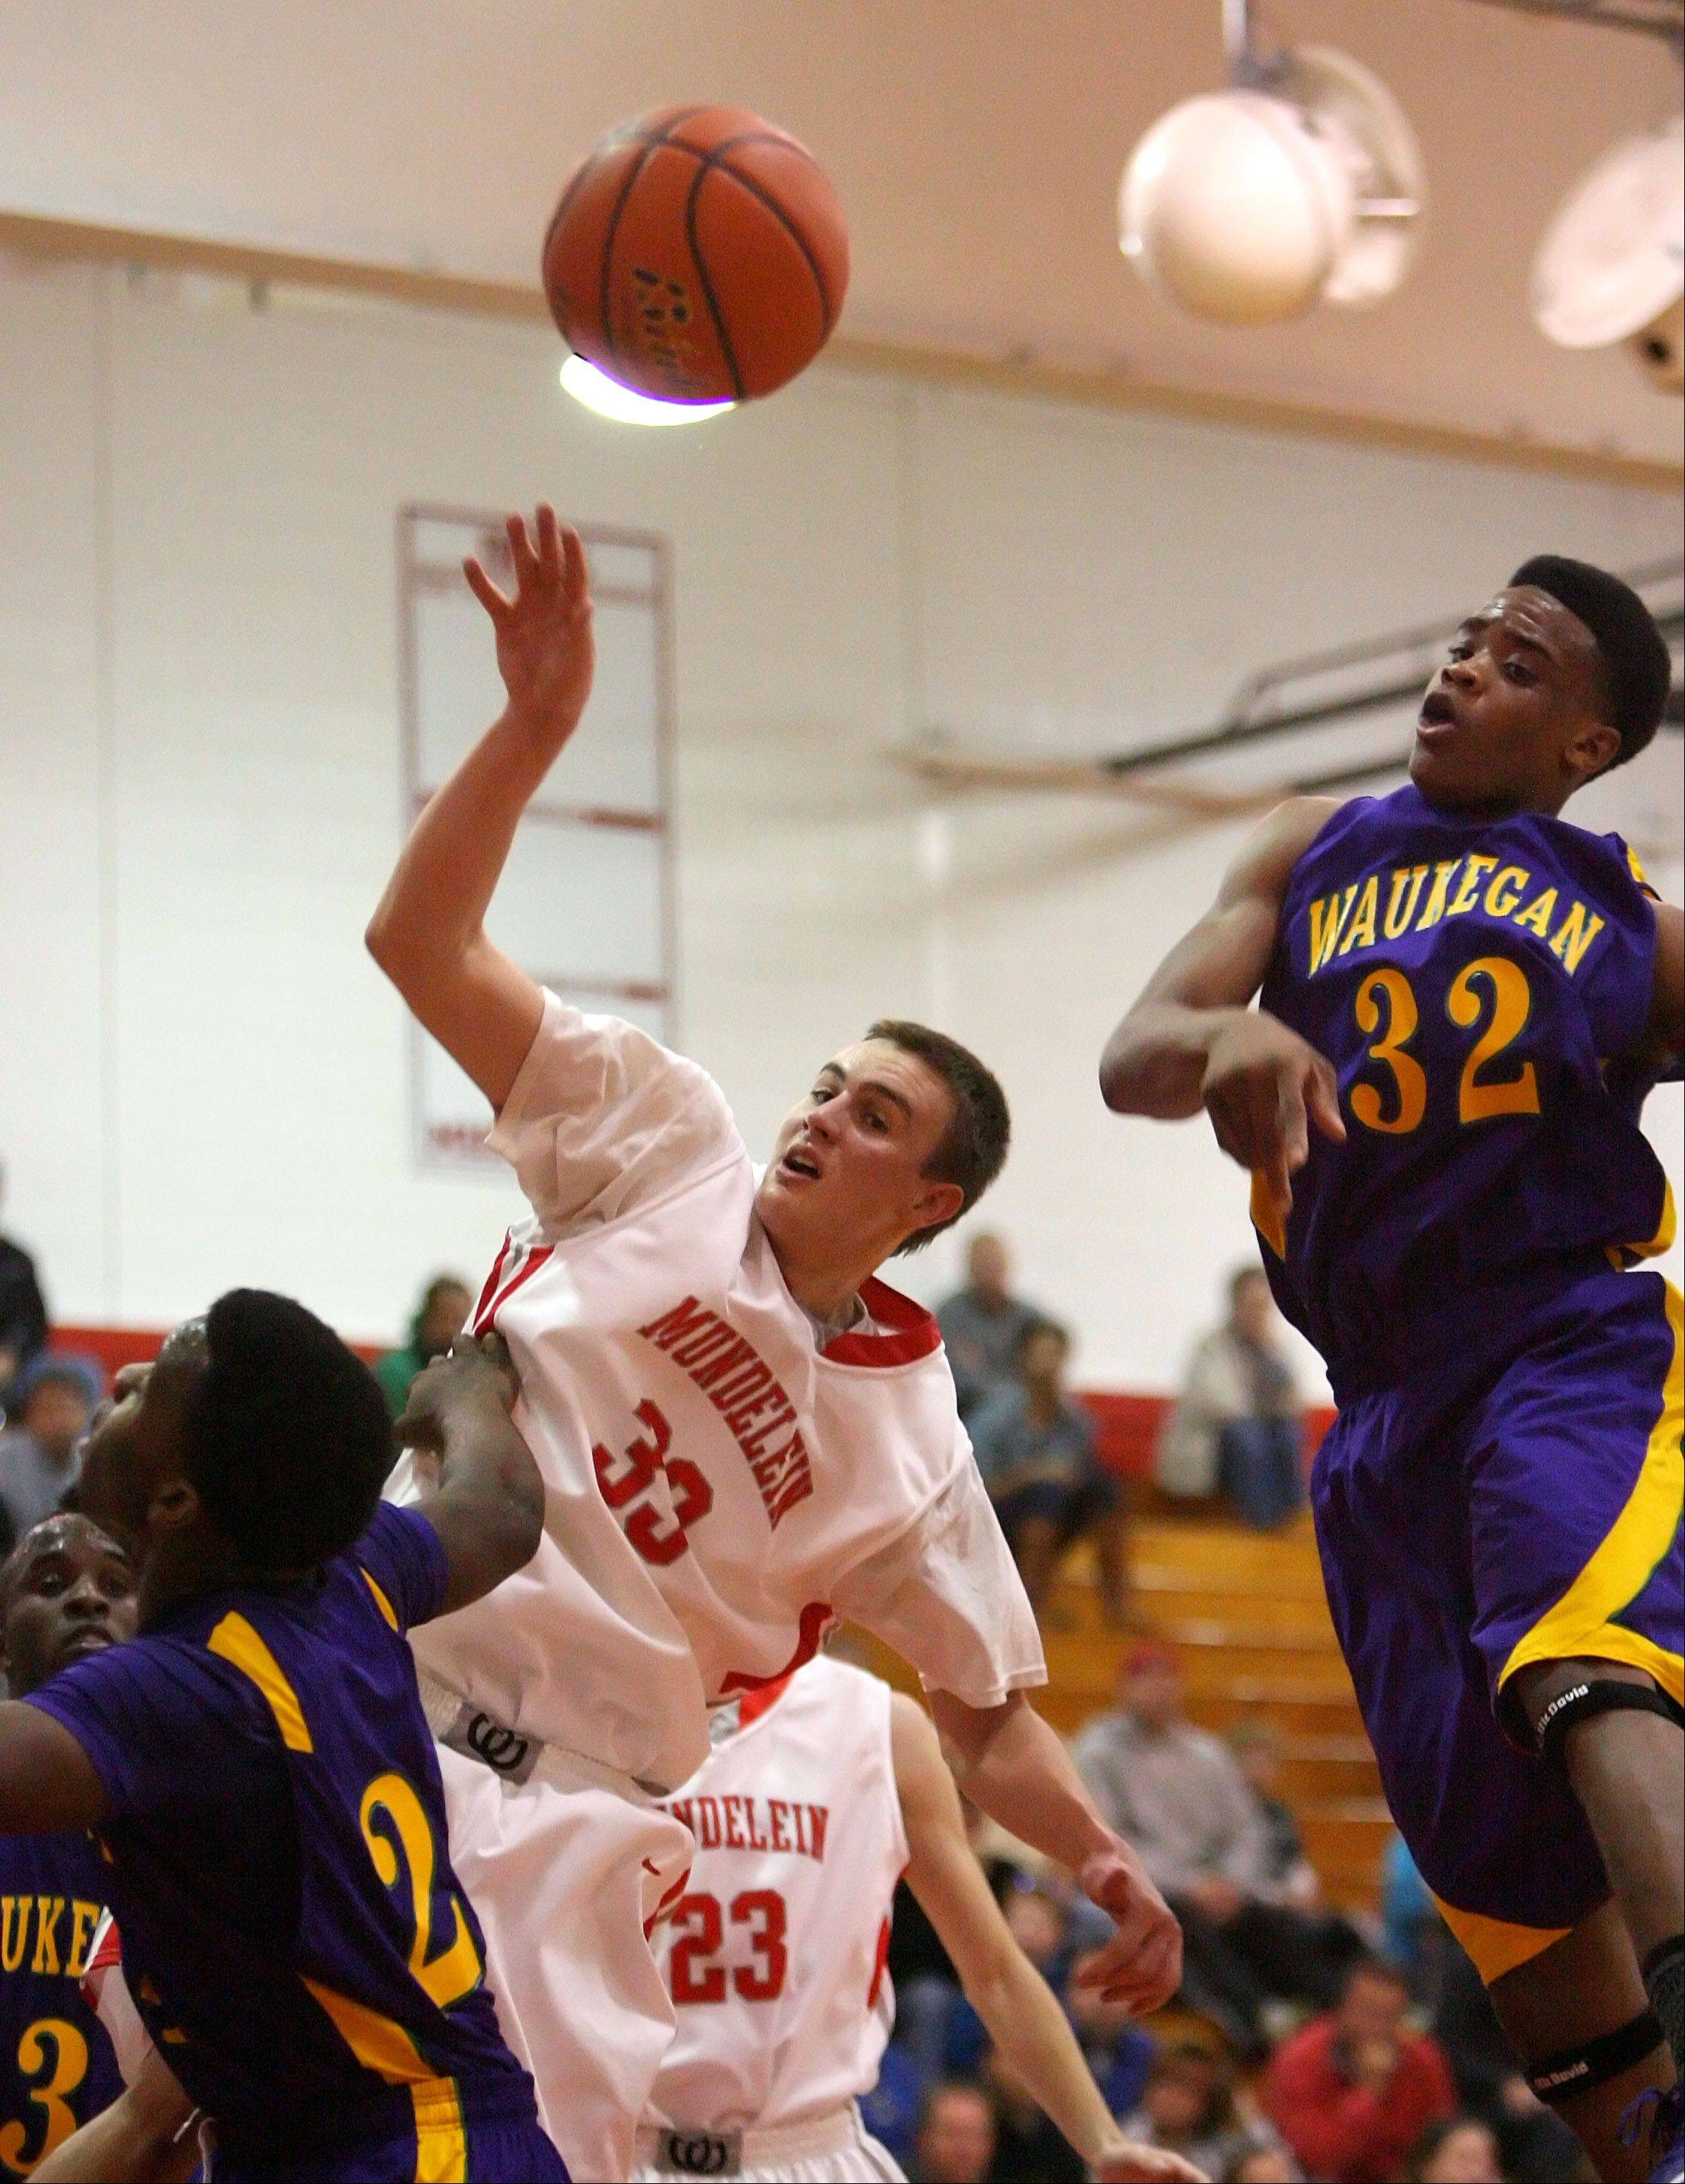 Mundelein's Sean O'Brien, center, drives on Waukegan's Jerome Davis, right, and Quintin Davis on Friday night at Mundelein.